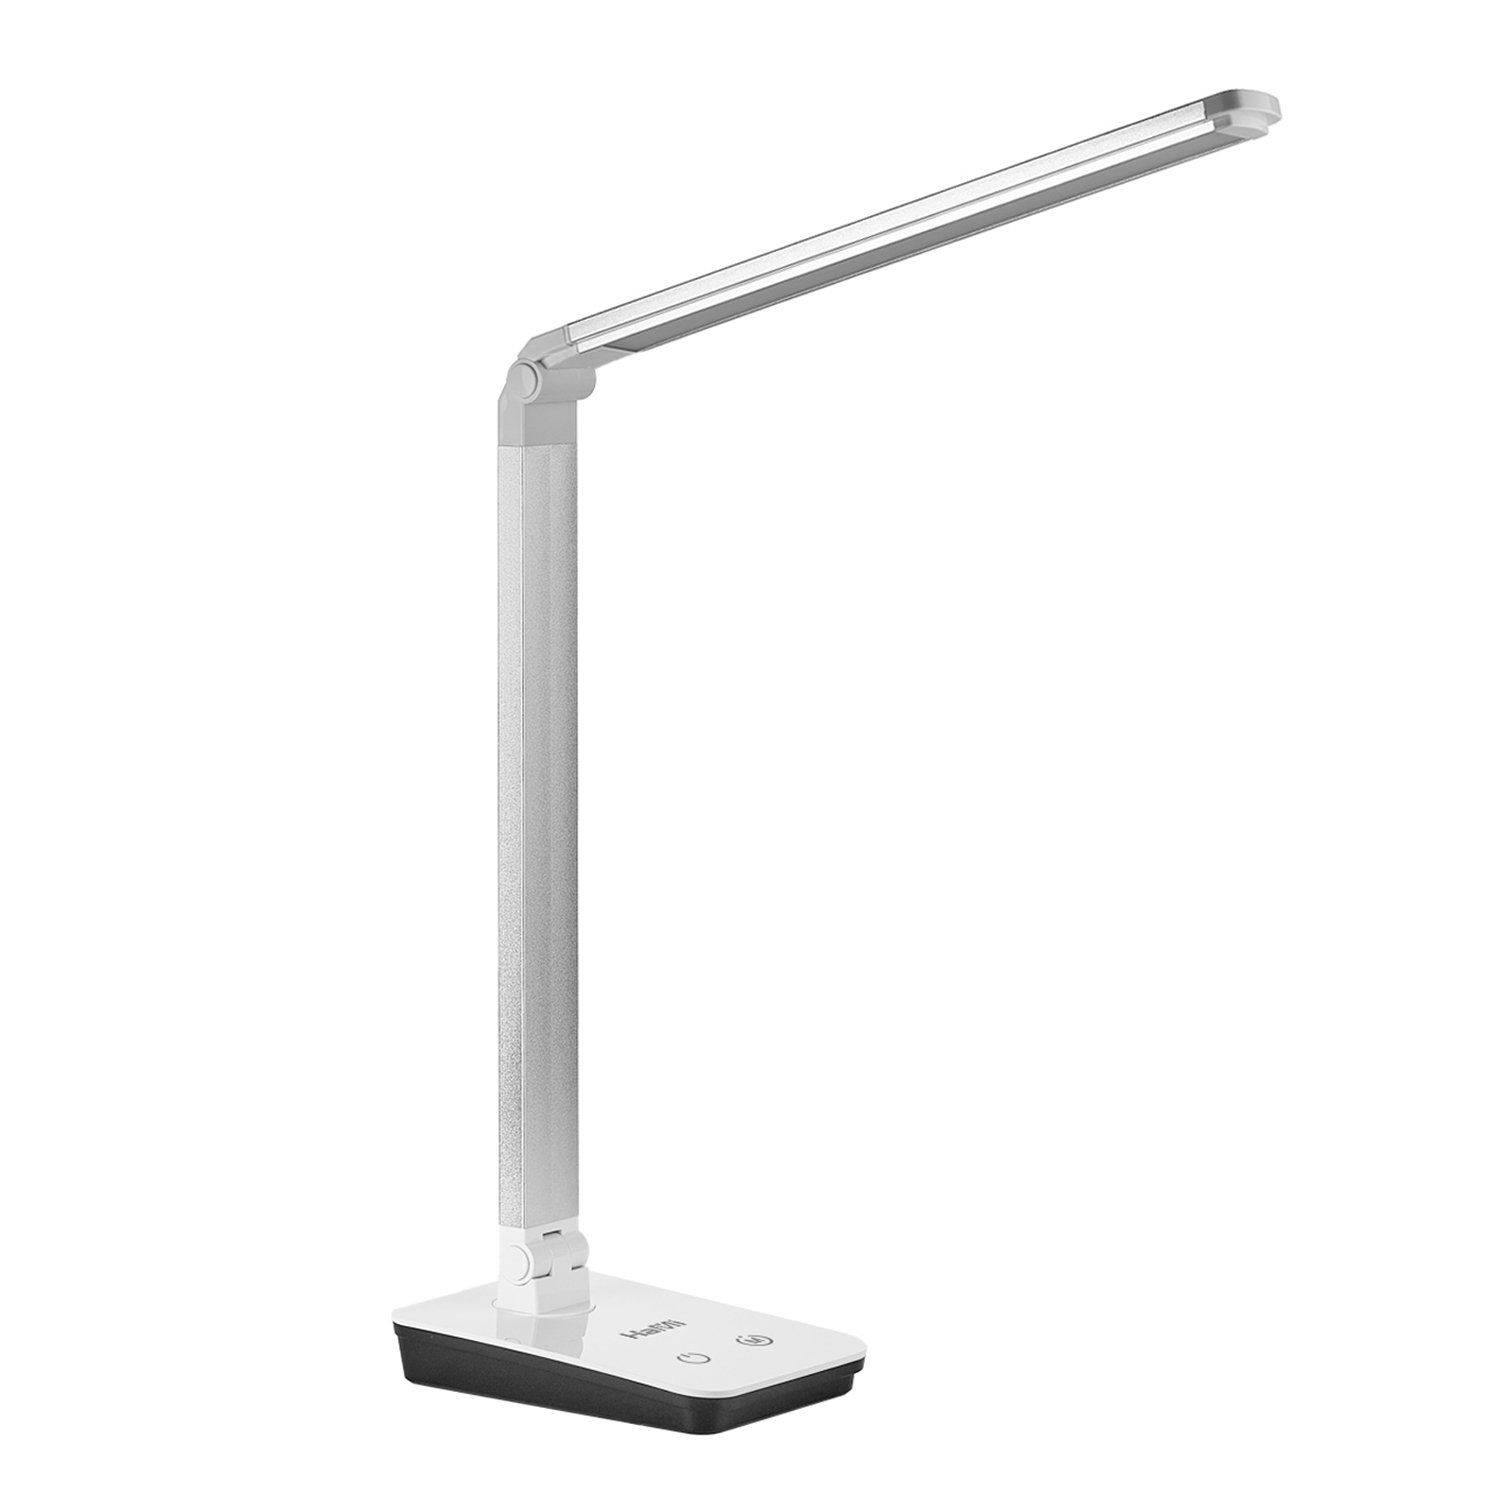 Hami dimmable led desk lamp 4 lighting modes 13w eye caring hami dimmable led desk lamp 4 lighting modes 13w eye caring stepless dimming aloadofball Choice Image